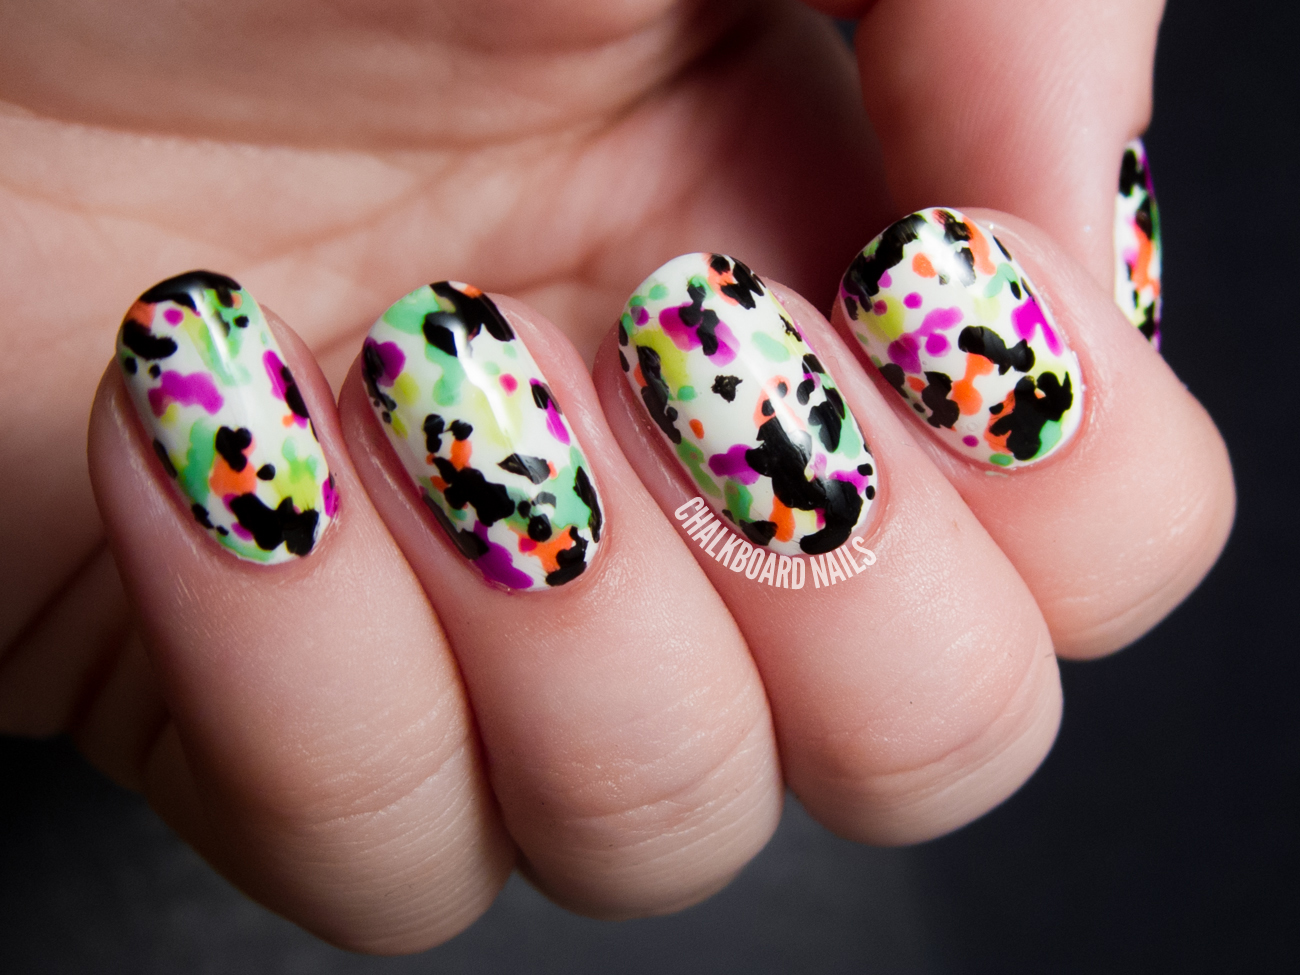 Nail Art: Abstract Splattered Floral